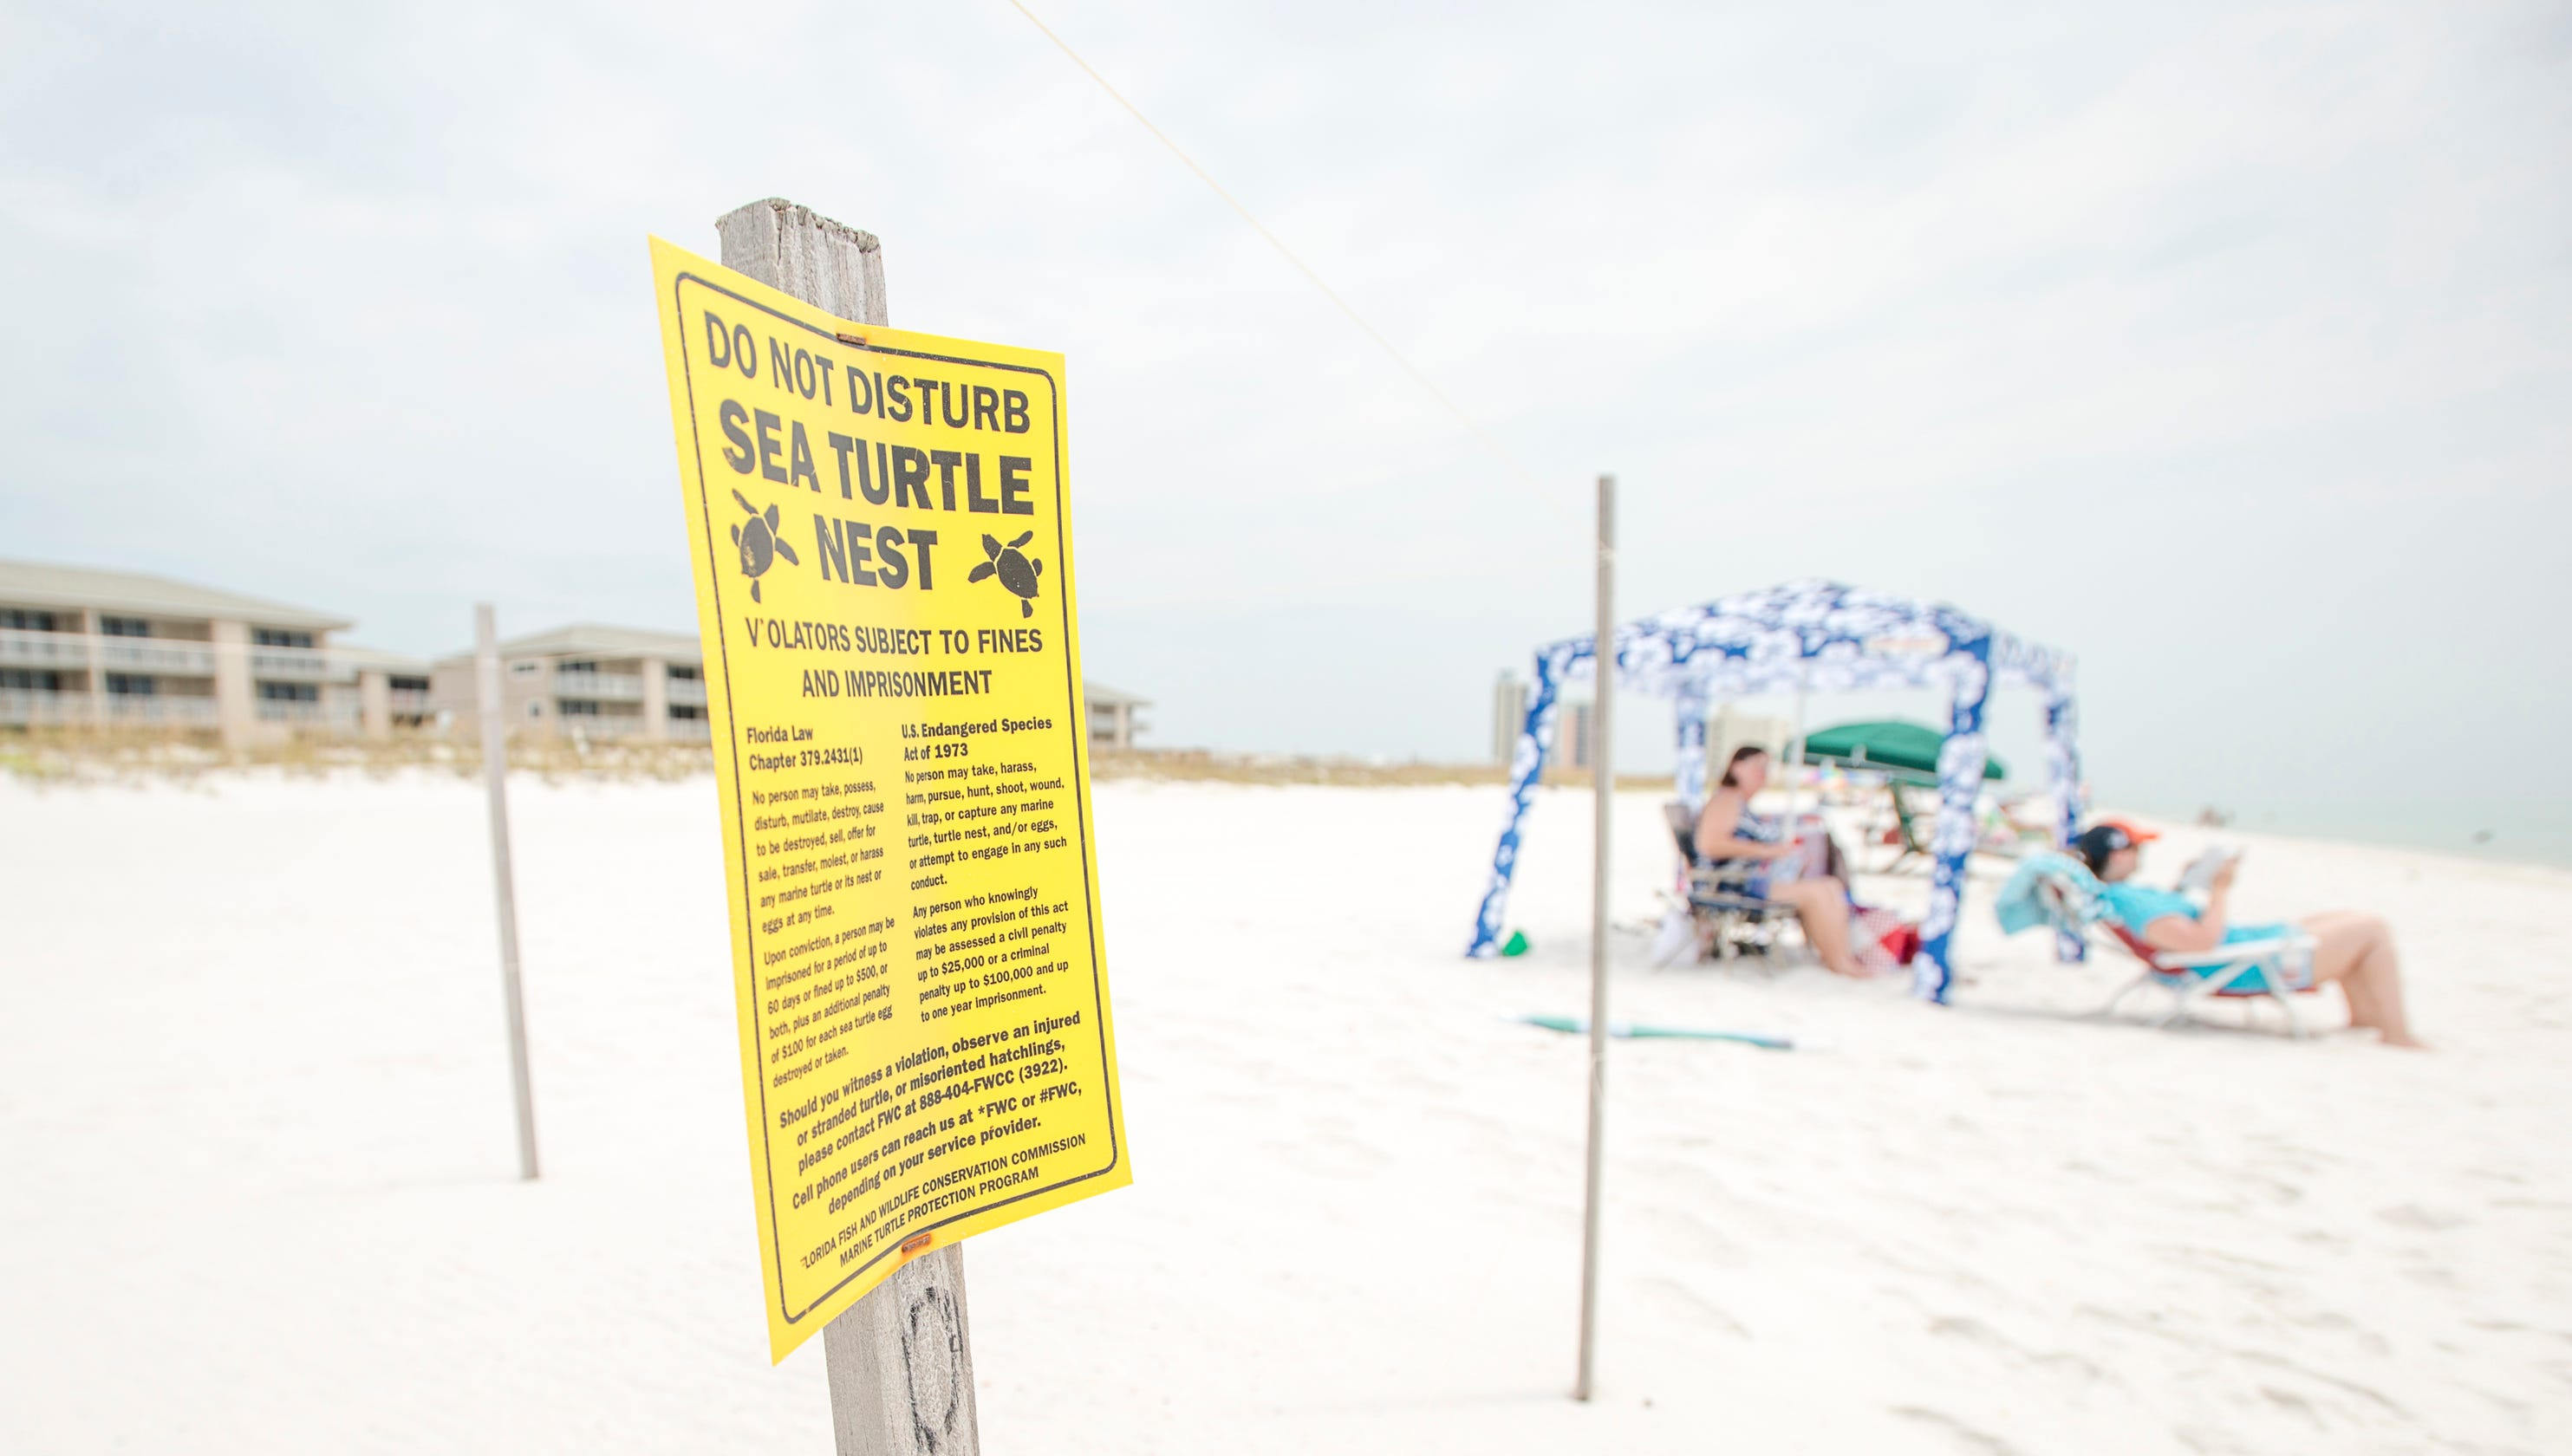 Sea turtle nest monitoring changes makes lights even more important